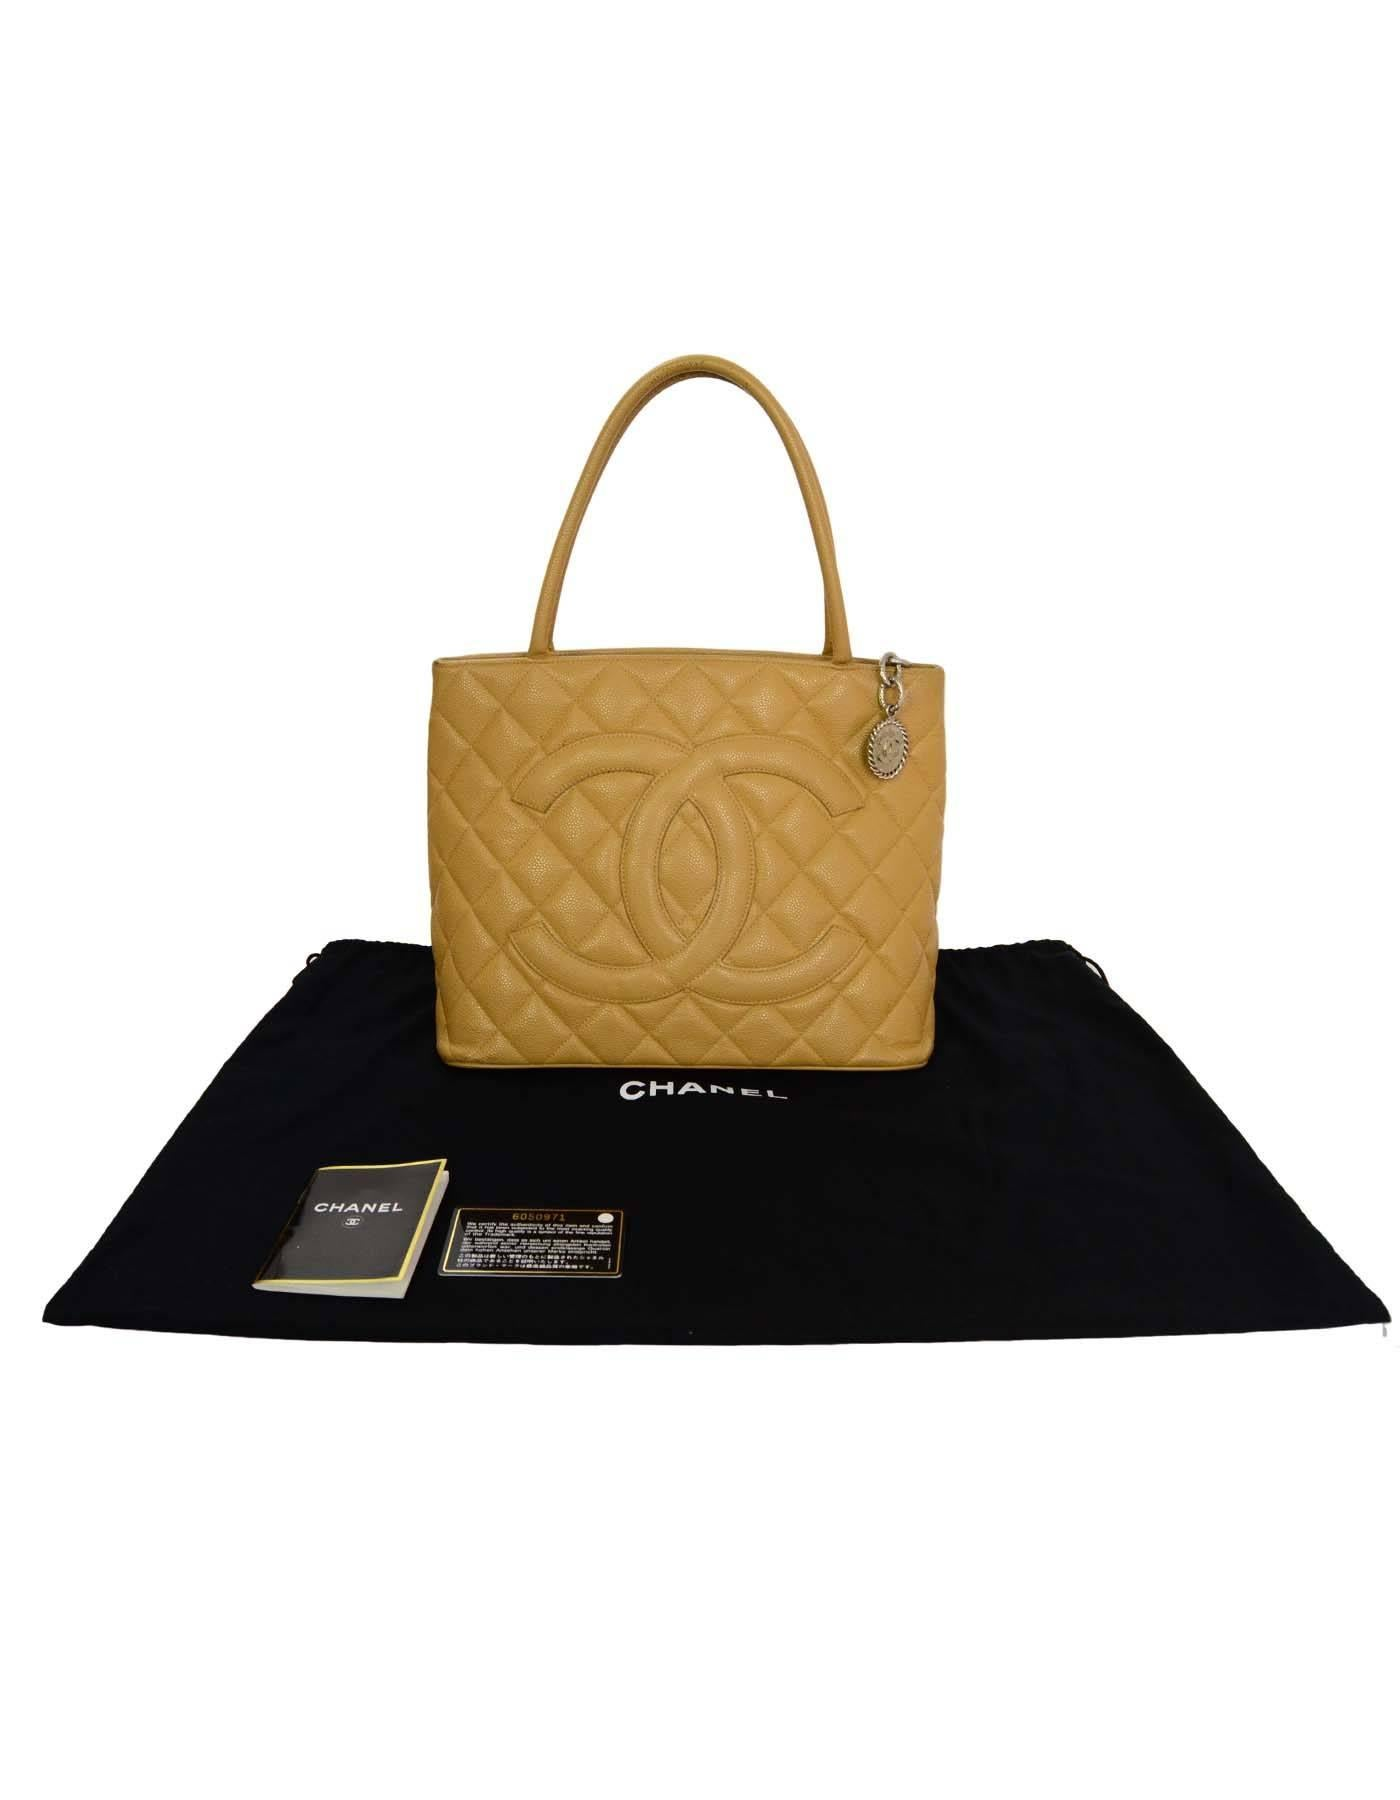 2d5f5f3ec45c Chanel Beige Caviar Leather Quilted CC Medallion Tote Bag For Sale at  1stdibs